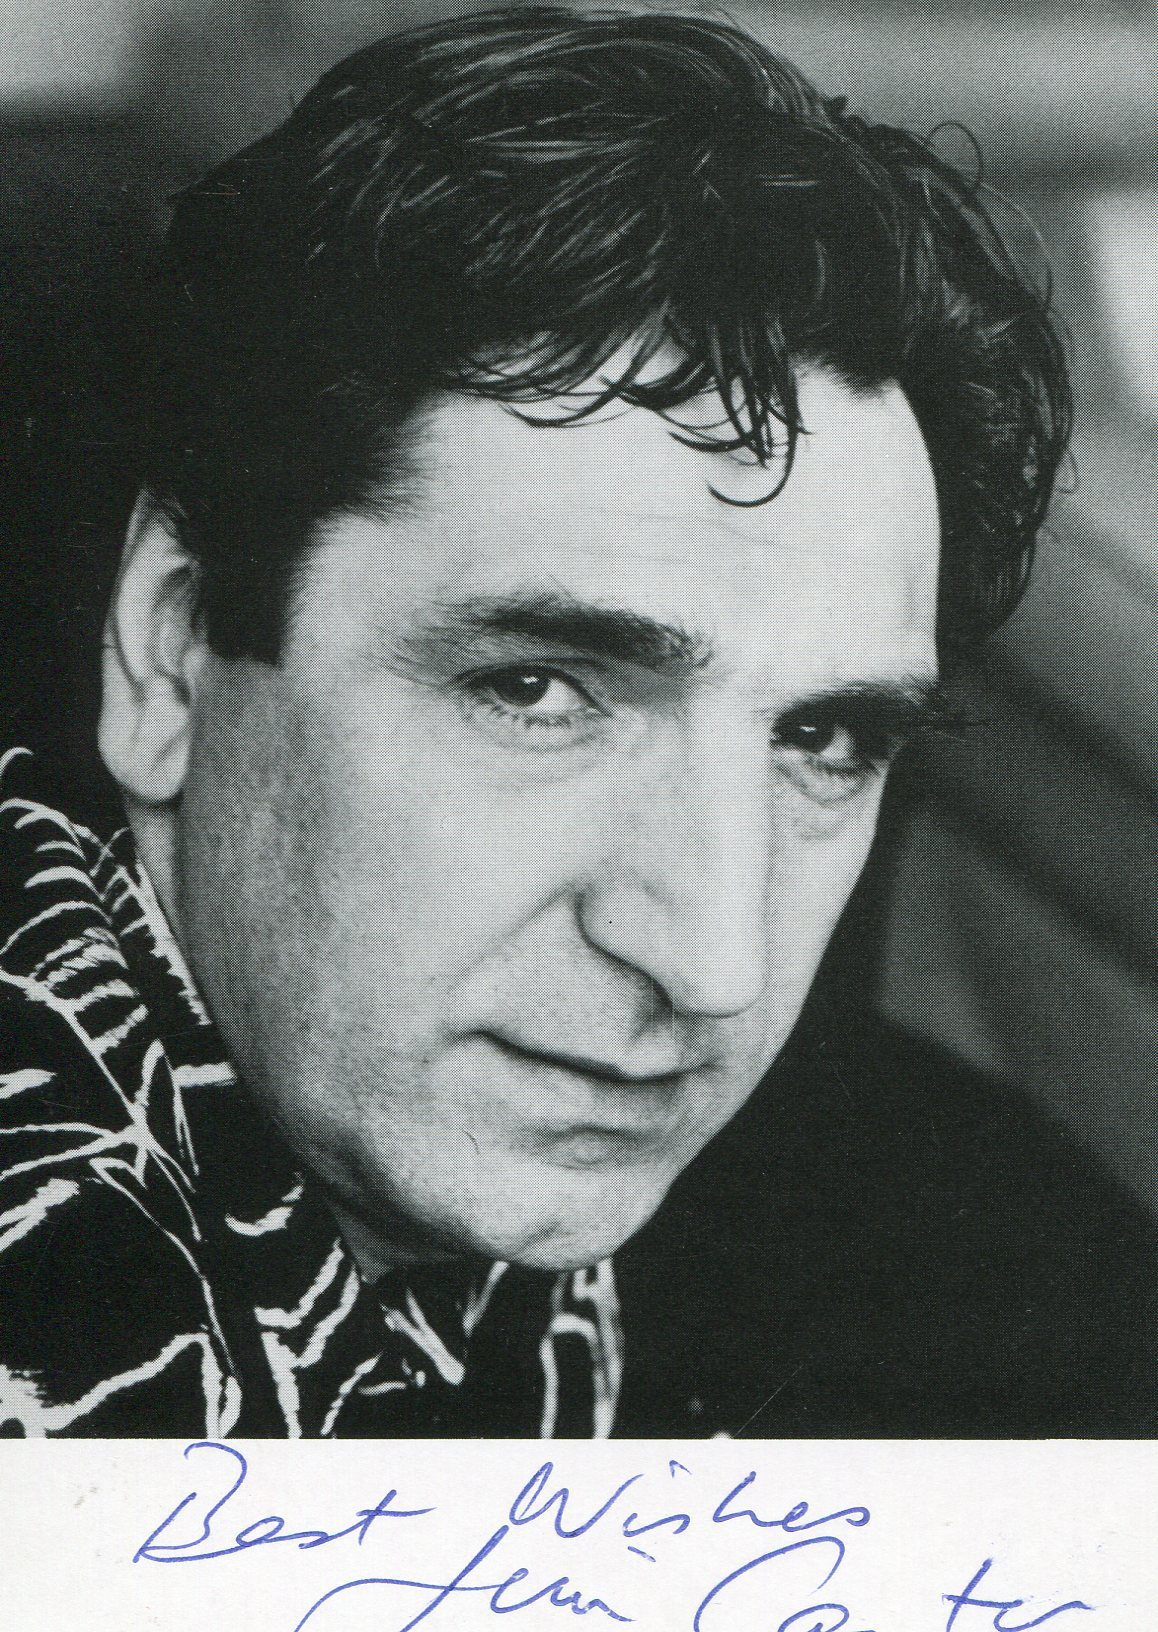 Jim Carter (born 1948)